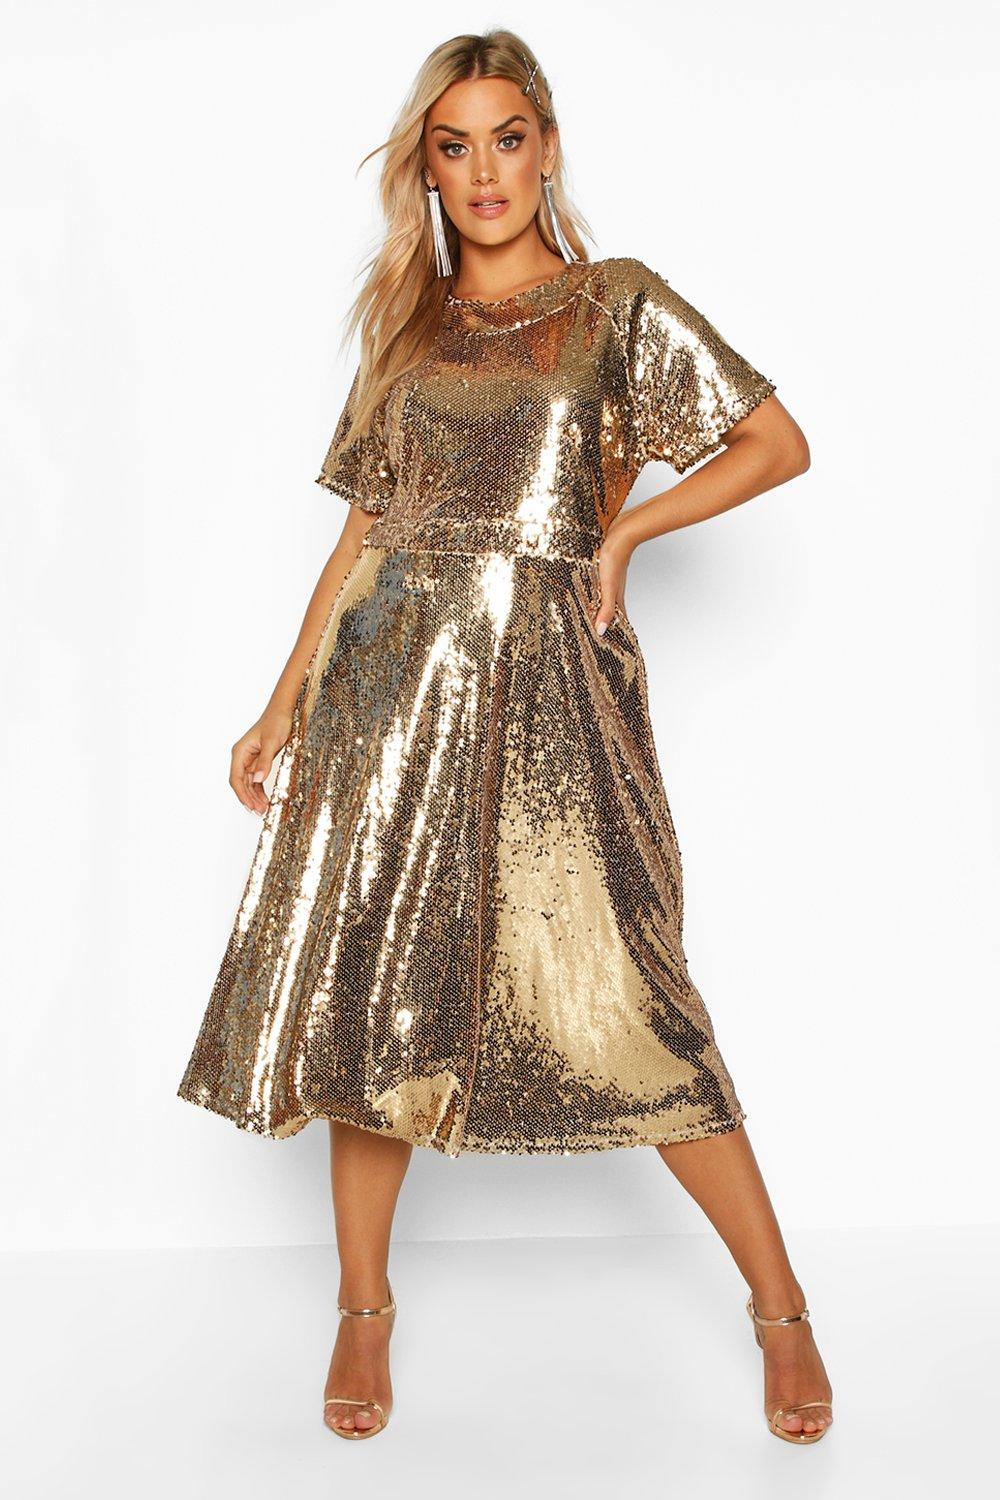 70s Prom, Formal, Evening, Party Dresses Womens Plus Sequin Midi Smock Dress - metallics - 16 $79.00 AT vintagedancer.com